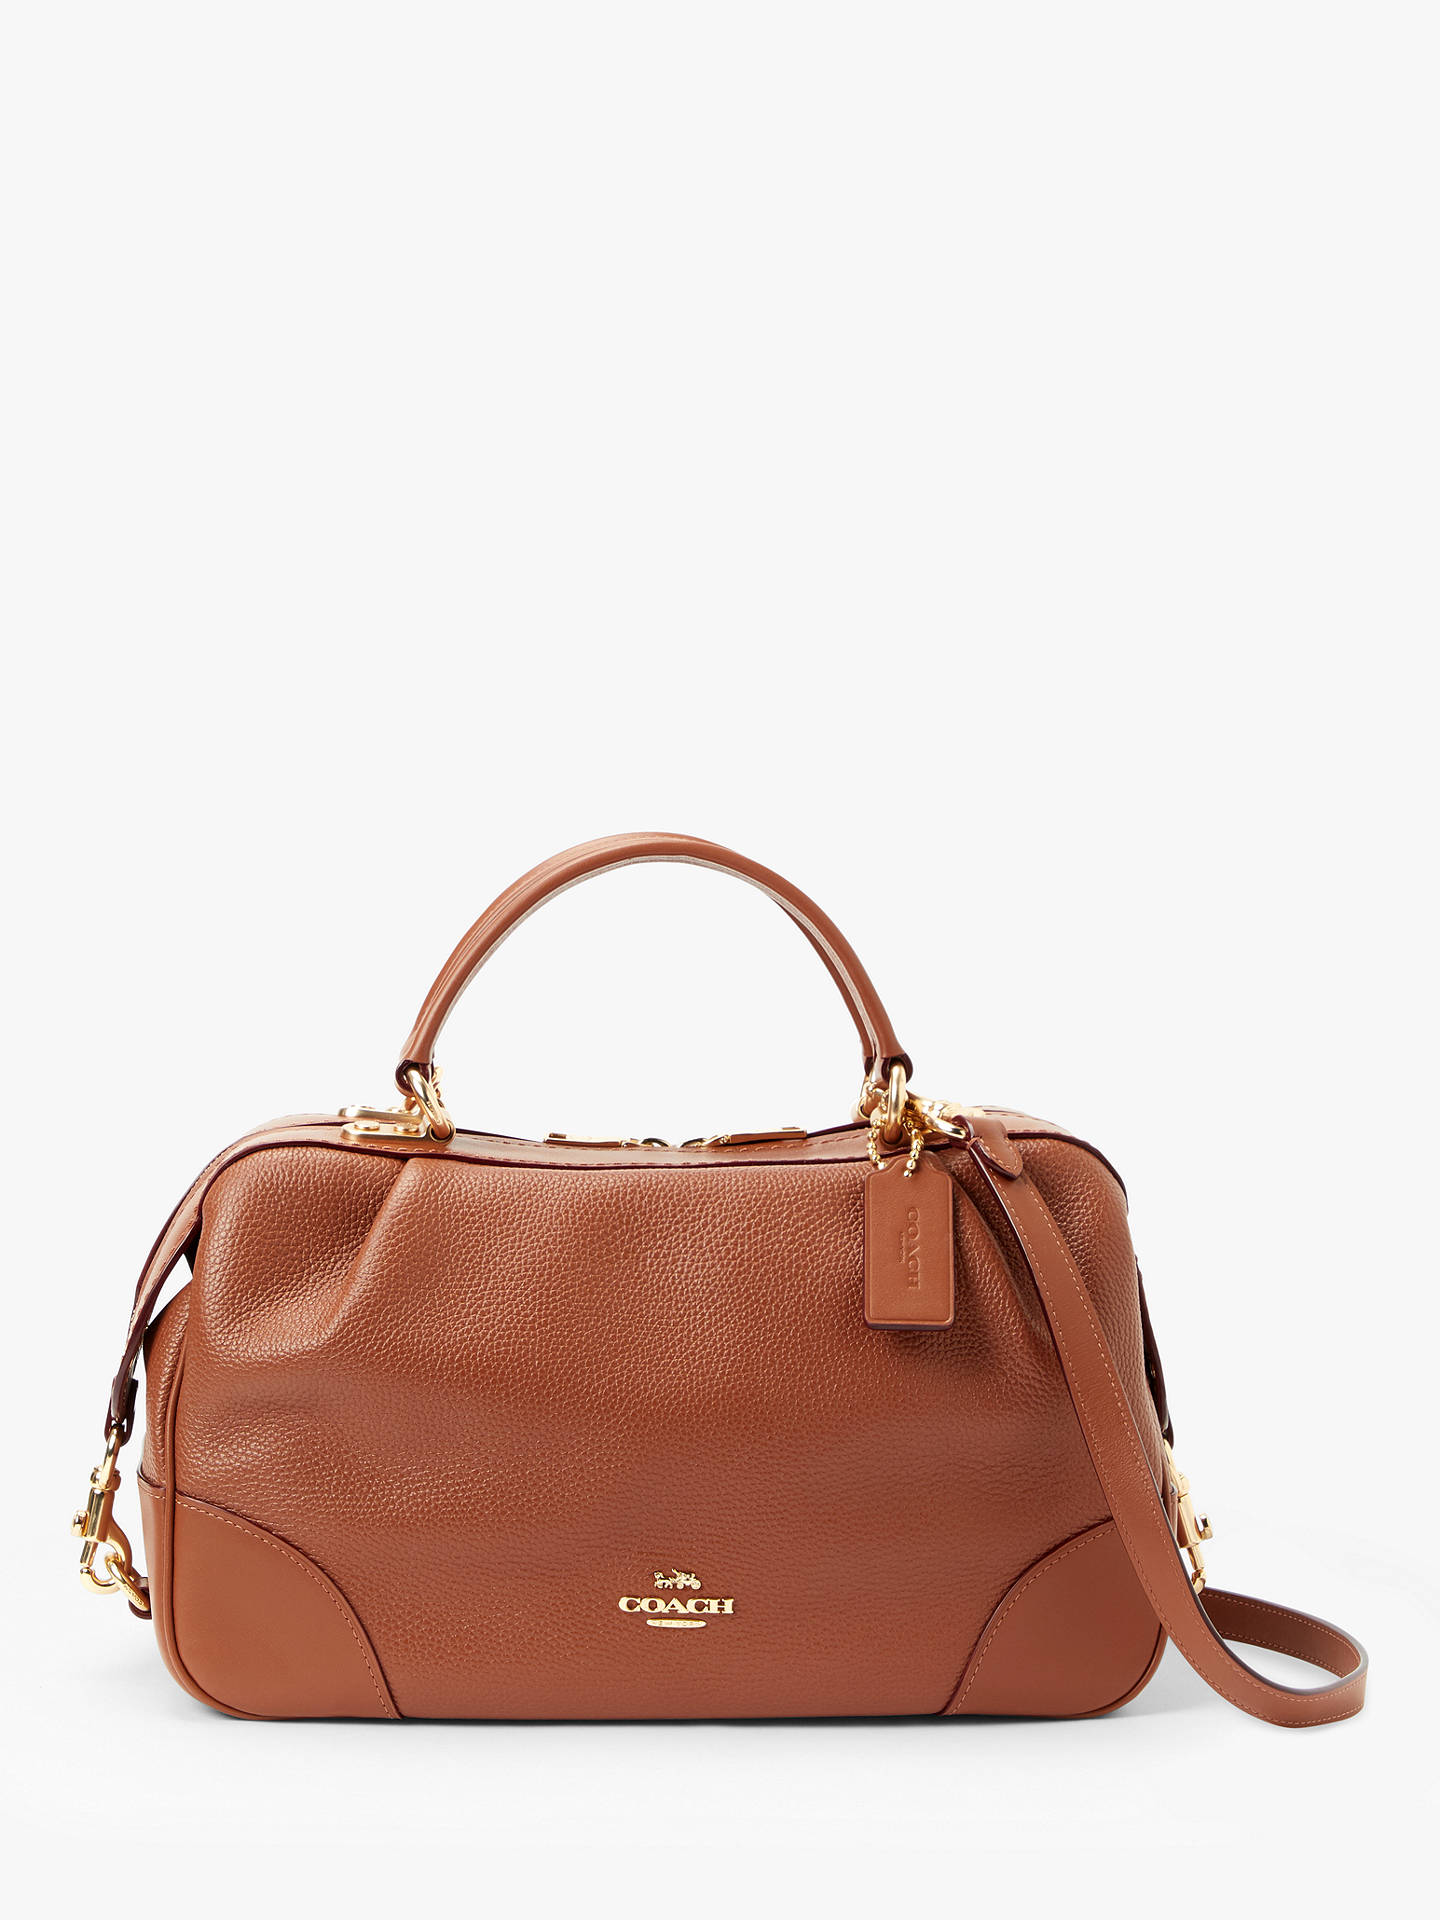 f0498c516e Buy Coach Aidy Leather Satchel Bag, 1941 Saddle Online at johnlewis.com ...